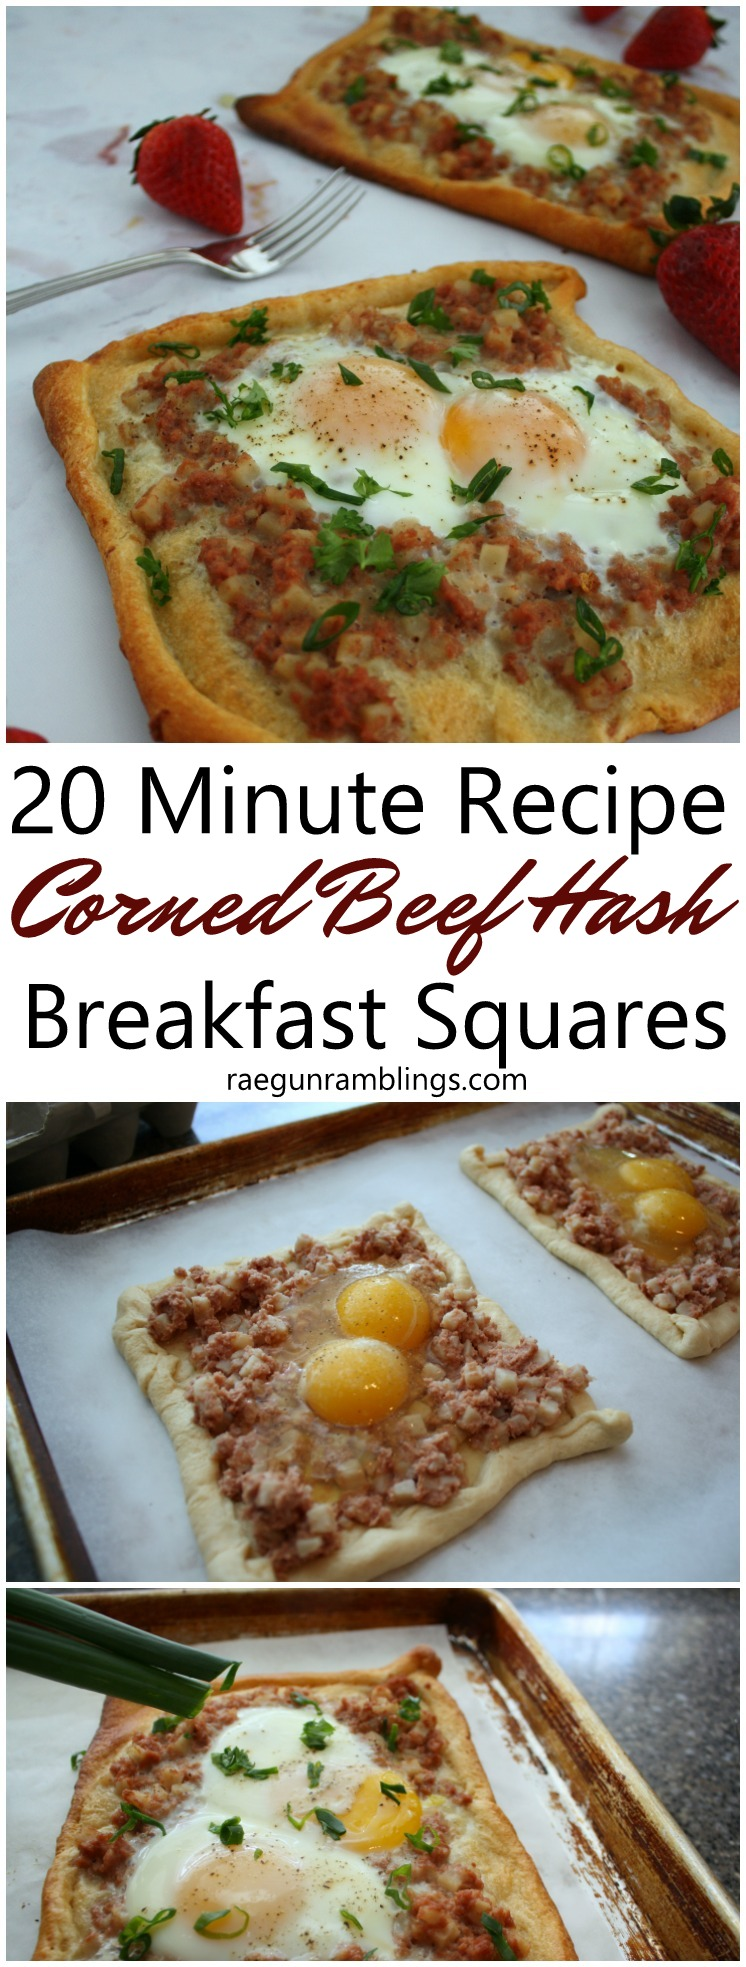 Will make again. Everyone loved this recipe and was so easy. 20 minute corned beef hash and egg breakfast squares. Would be great for brunch entertaining.